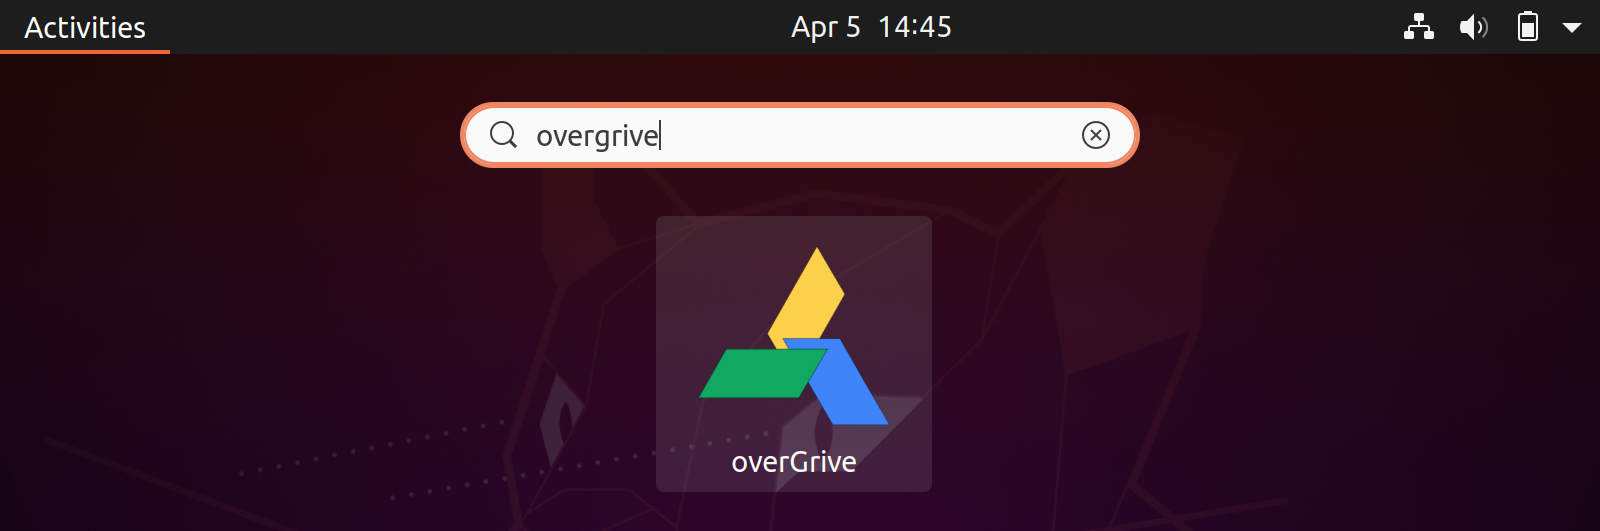 overGrive - Ubuntu Installation Instructions | The Fan Club